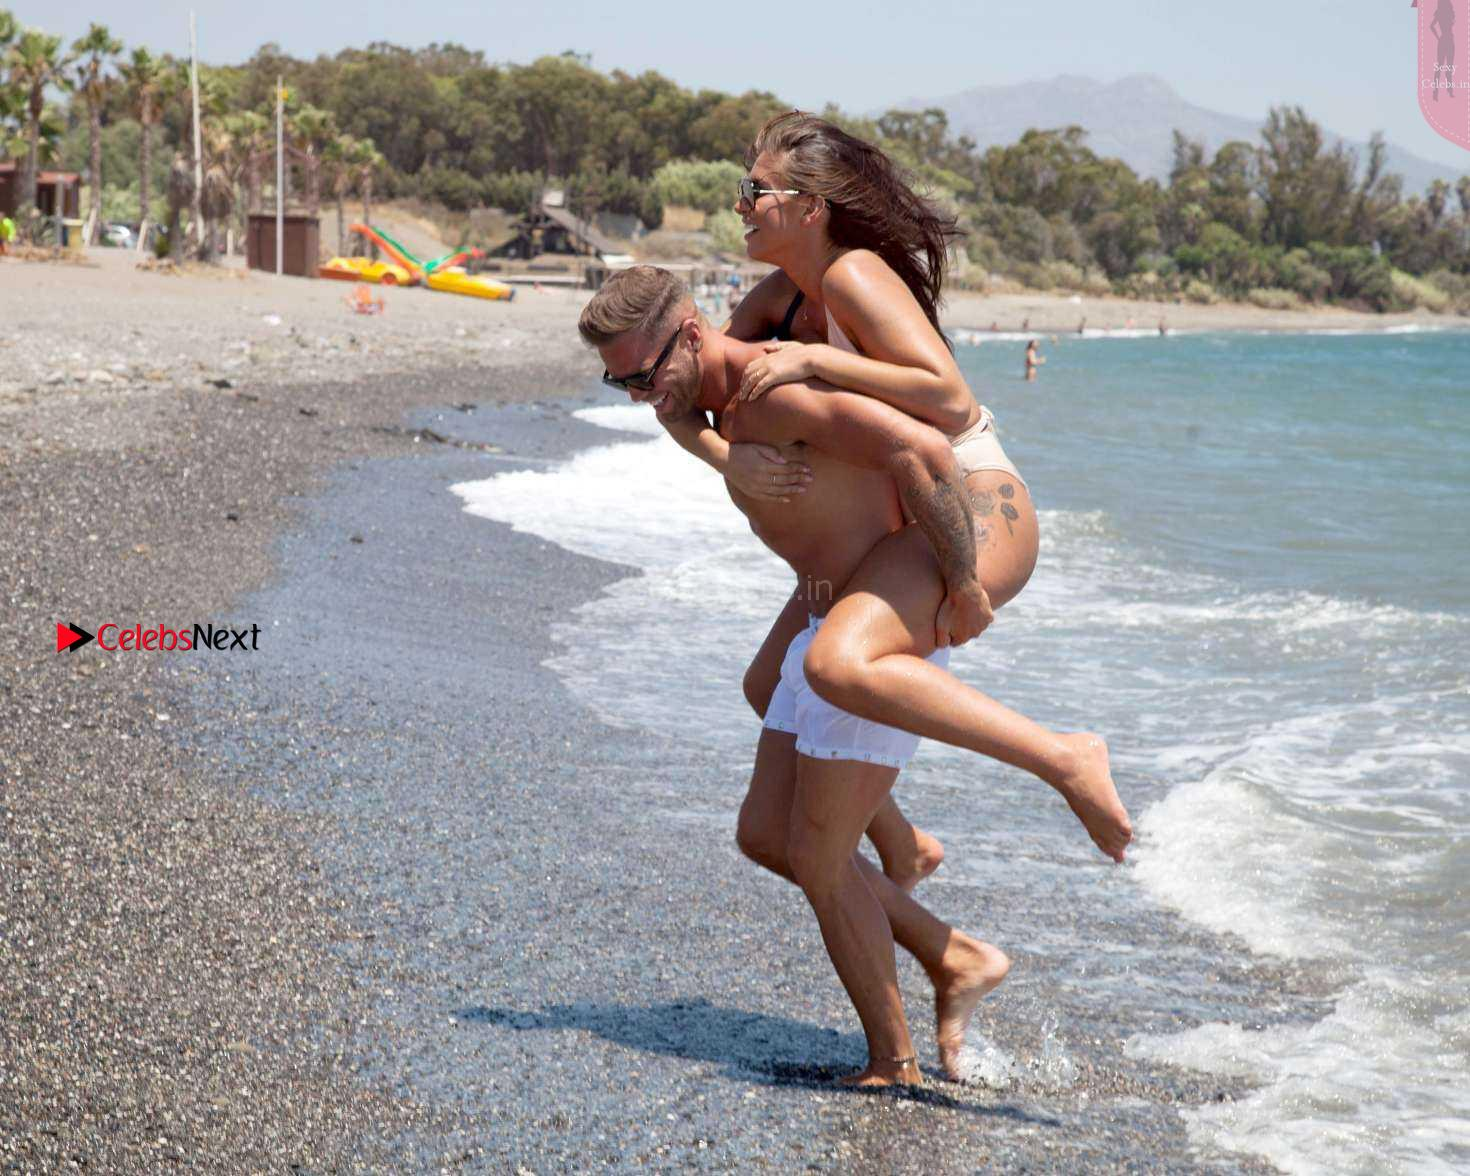 Jessica Sheers busty babe in bikini having sex with her boy friend in bikini on beach wow August 2017